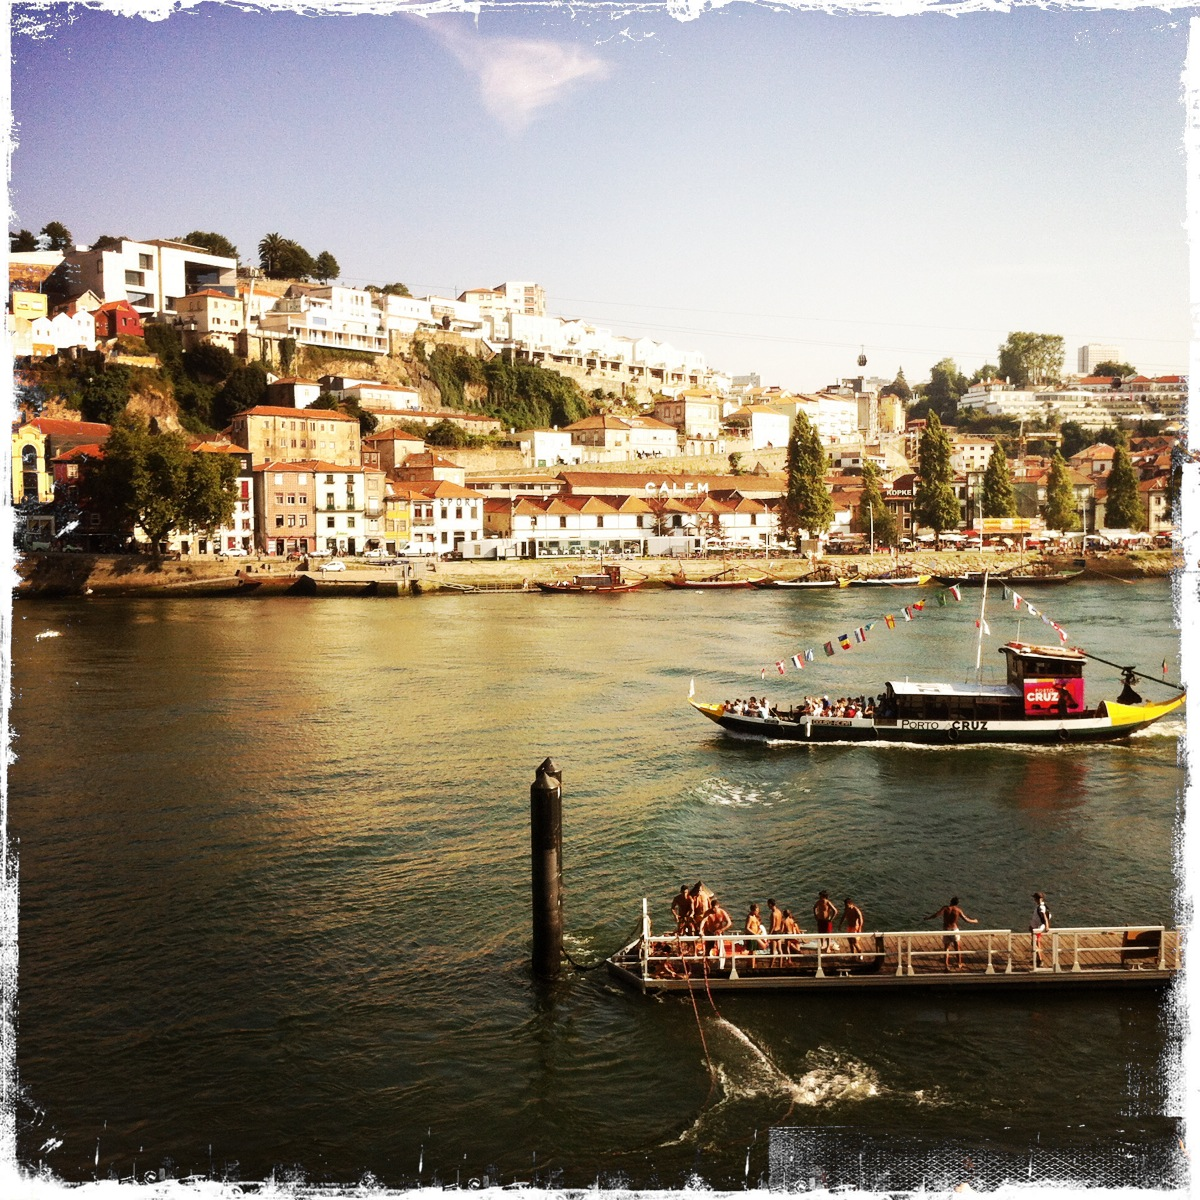 View of the River Douro in Porto, Portugal, where kids were flinging themselves off the dock on a hot summer day.